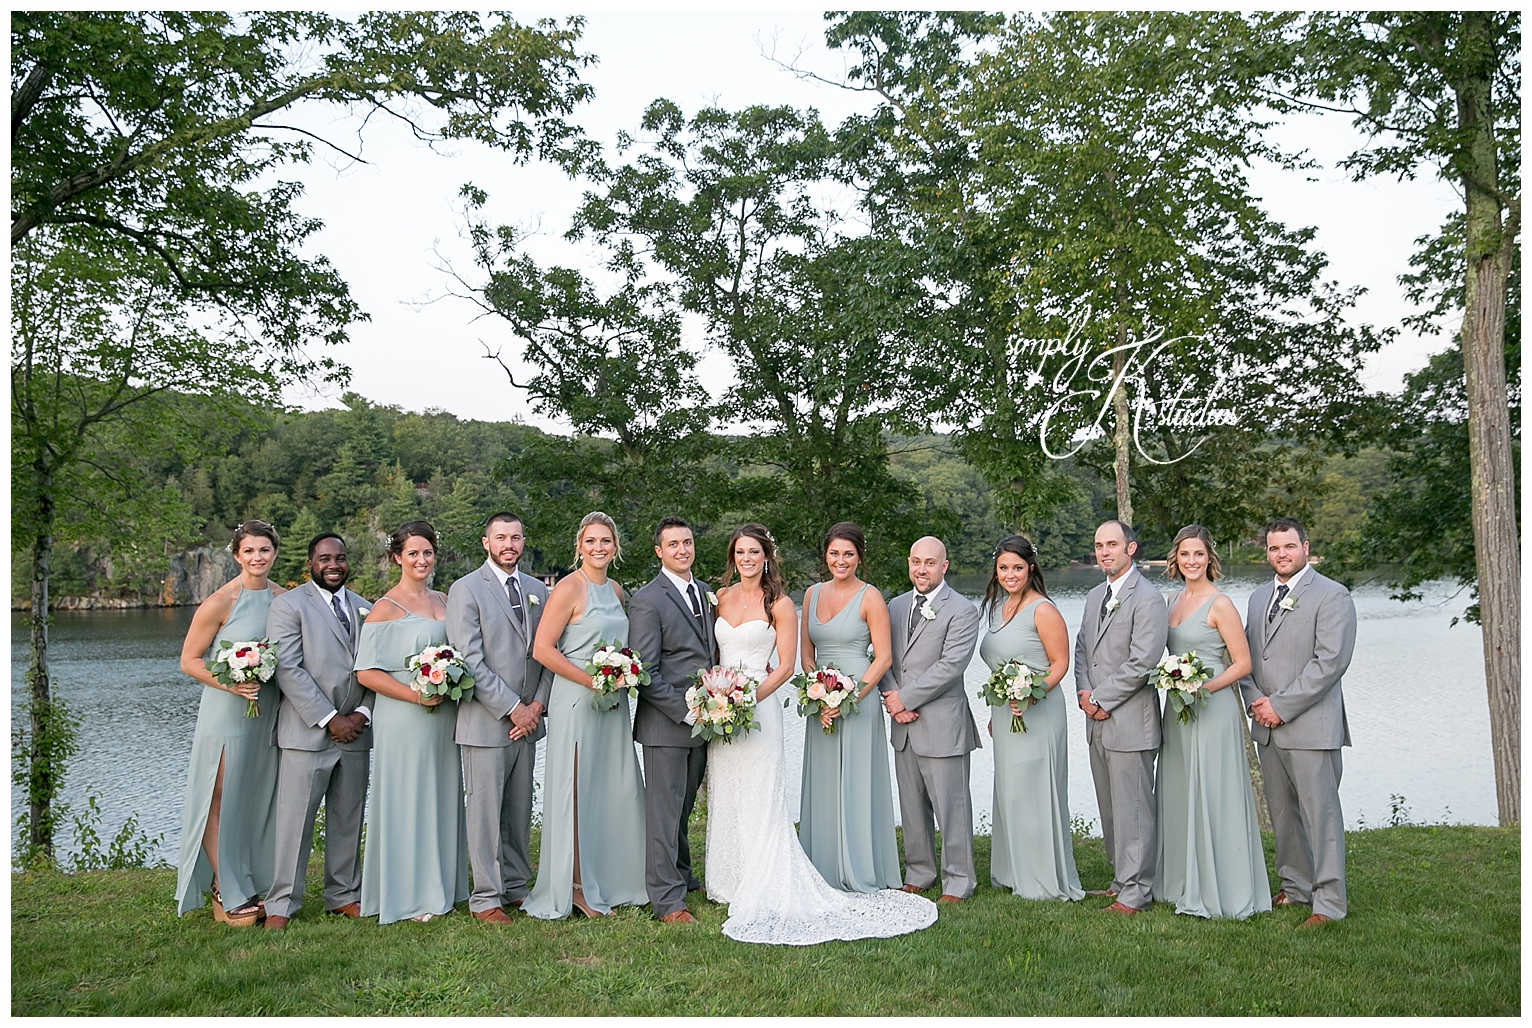 Bridal Party Photos in CT.jpg